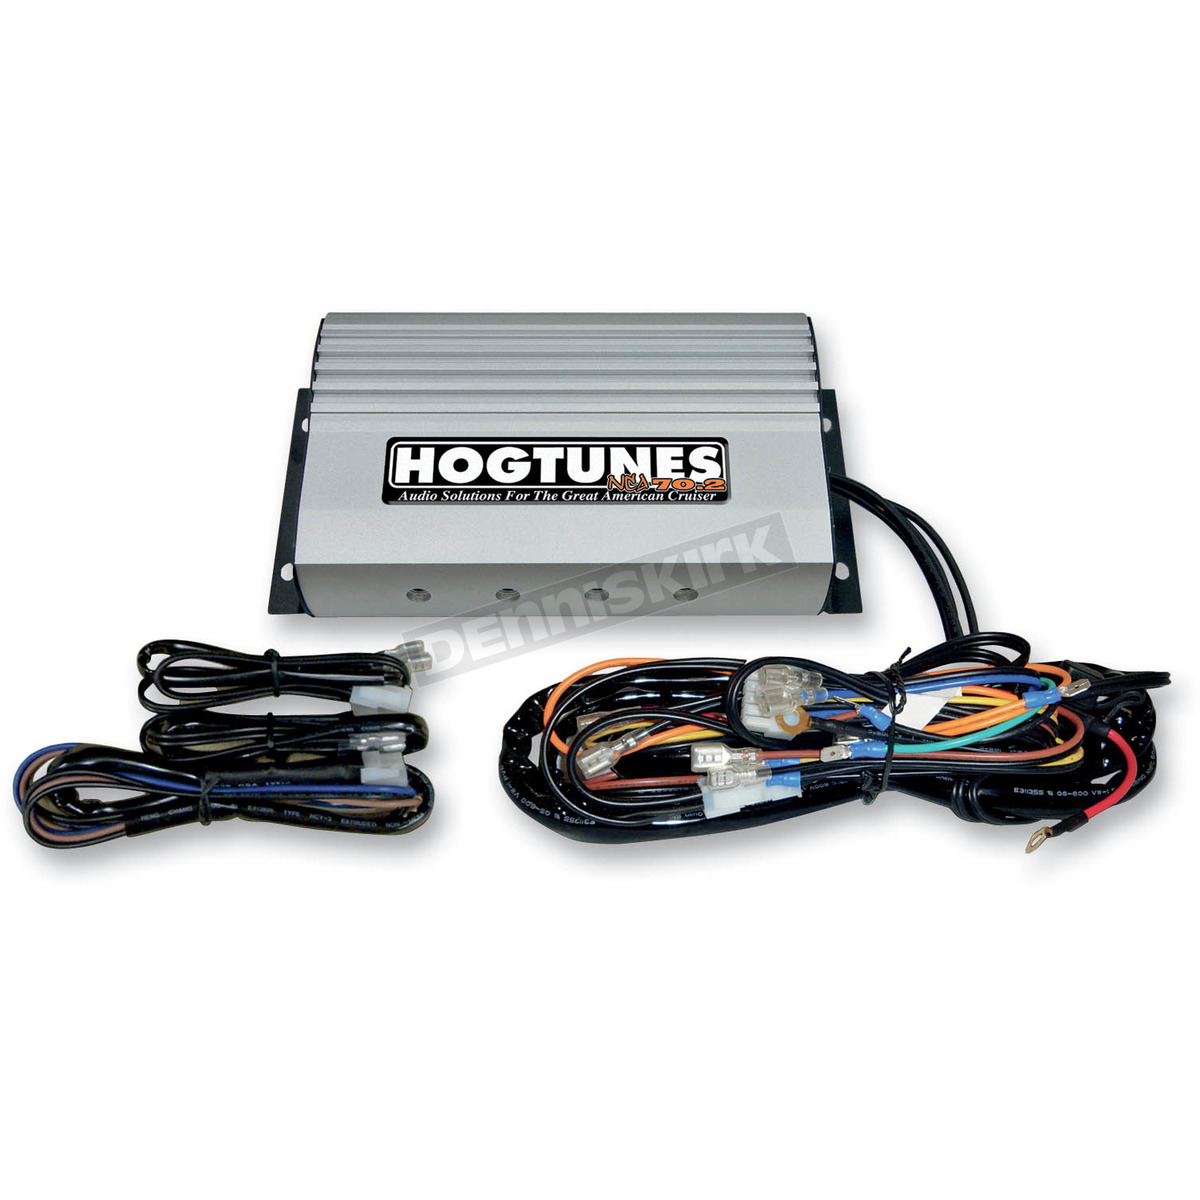 hogtunes amp front & rear speakers 2000-2013  hogtunes rev series 200 watt  2 channel amp kit for  hogtunes nca 450-aa 200 watt 4 channel amp kit for  2000